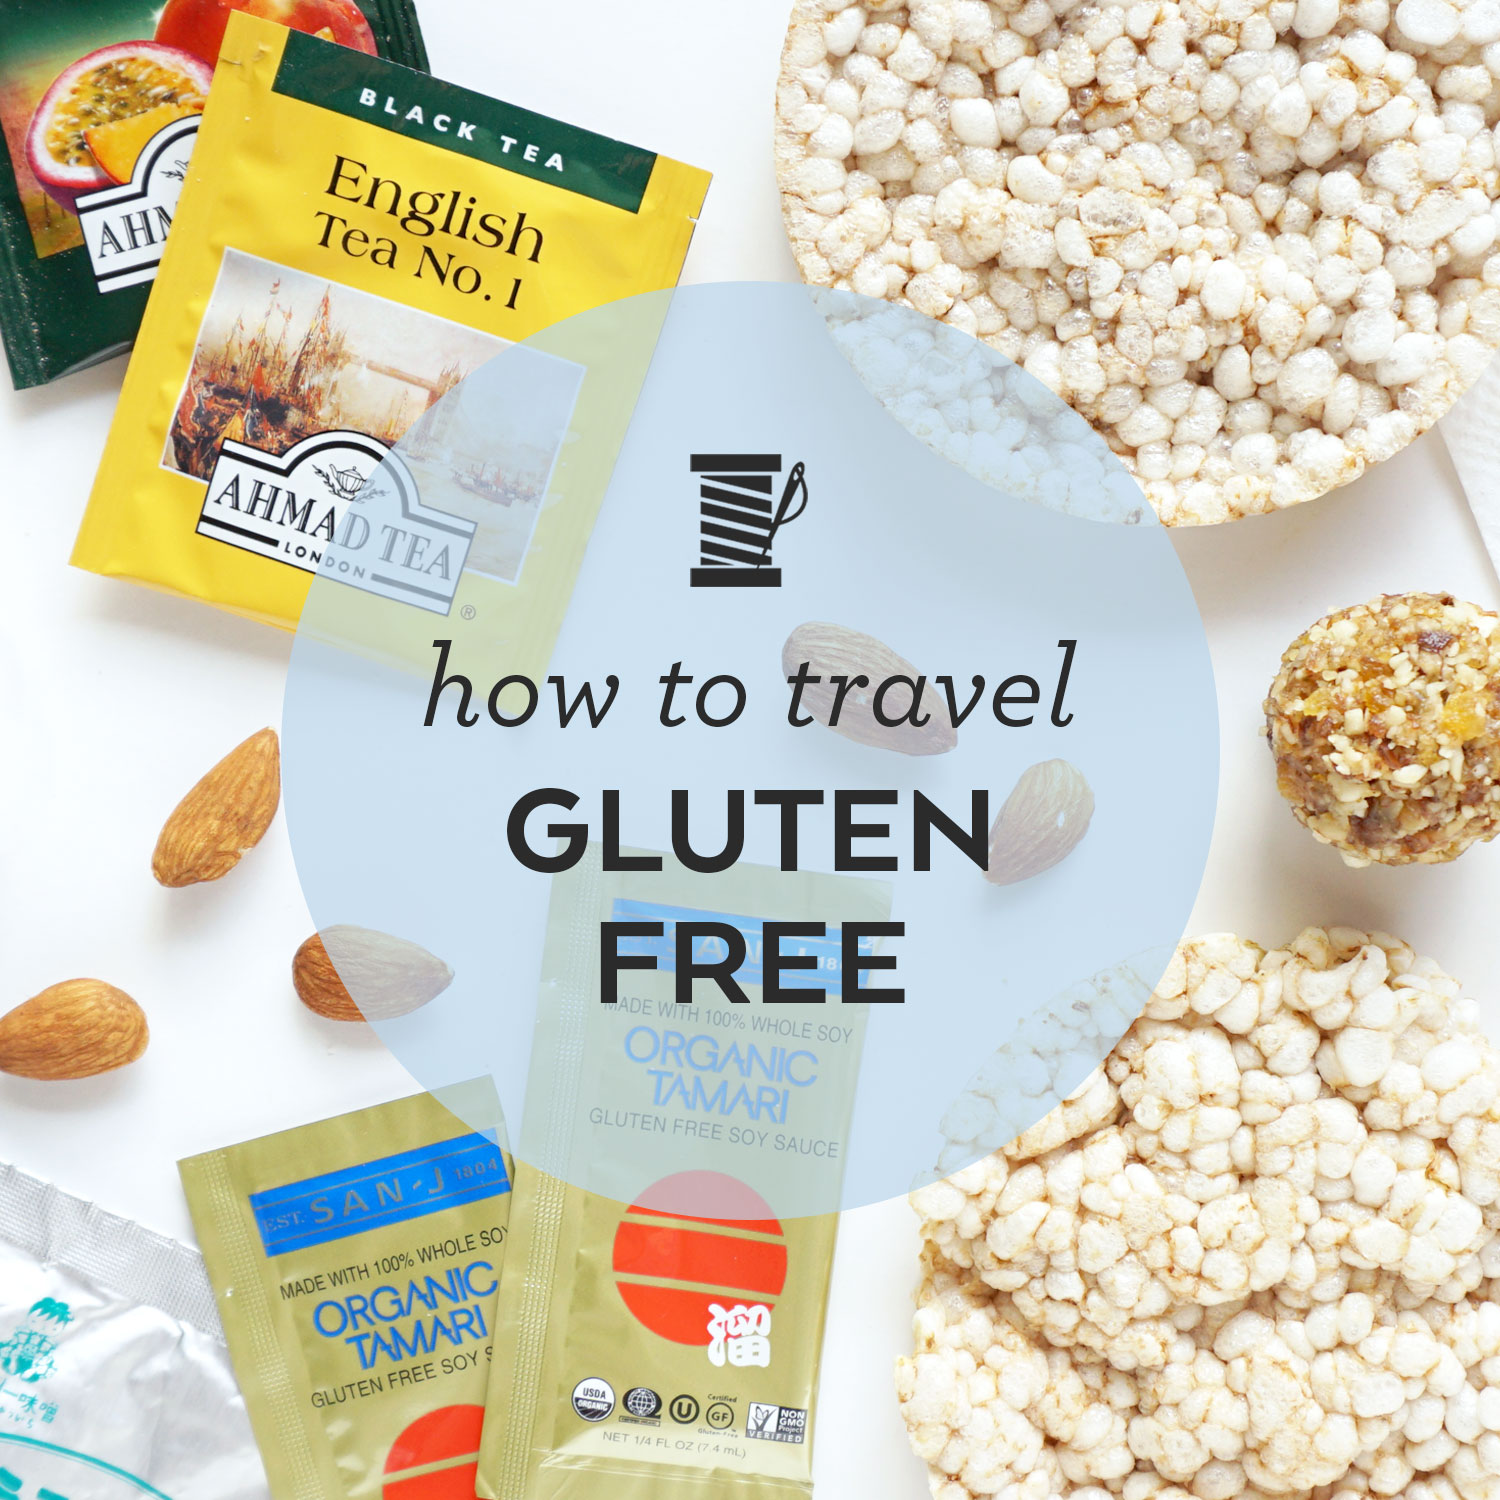 Tips for how to travel gluten free   Sew DIY